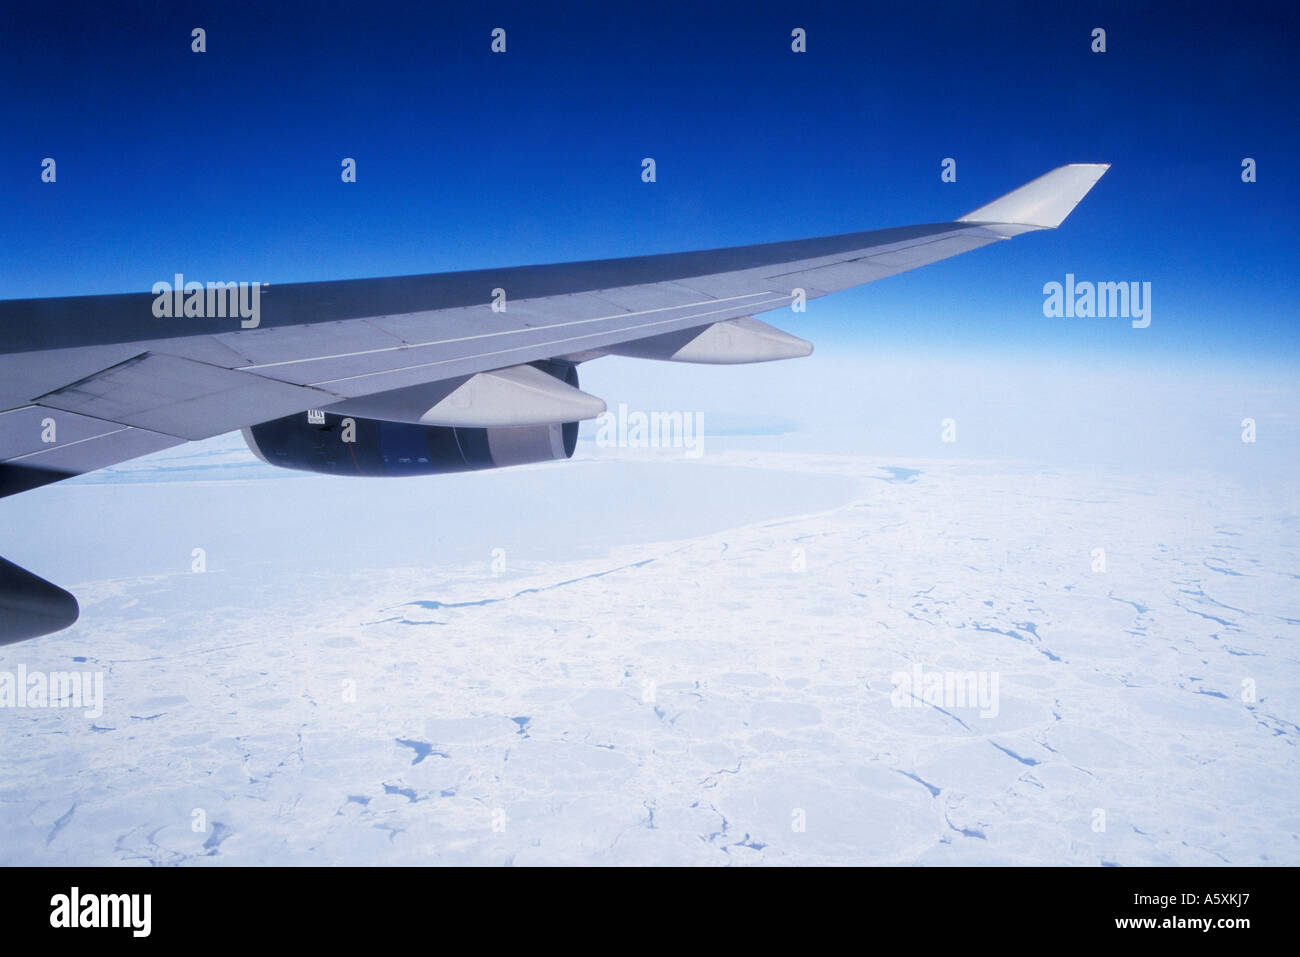 Aerial view of Airplane wing and of Ice bound Northern Canada Stock Photo